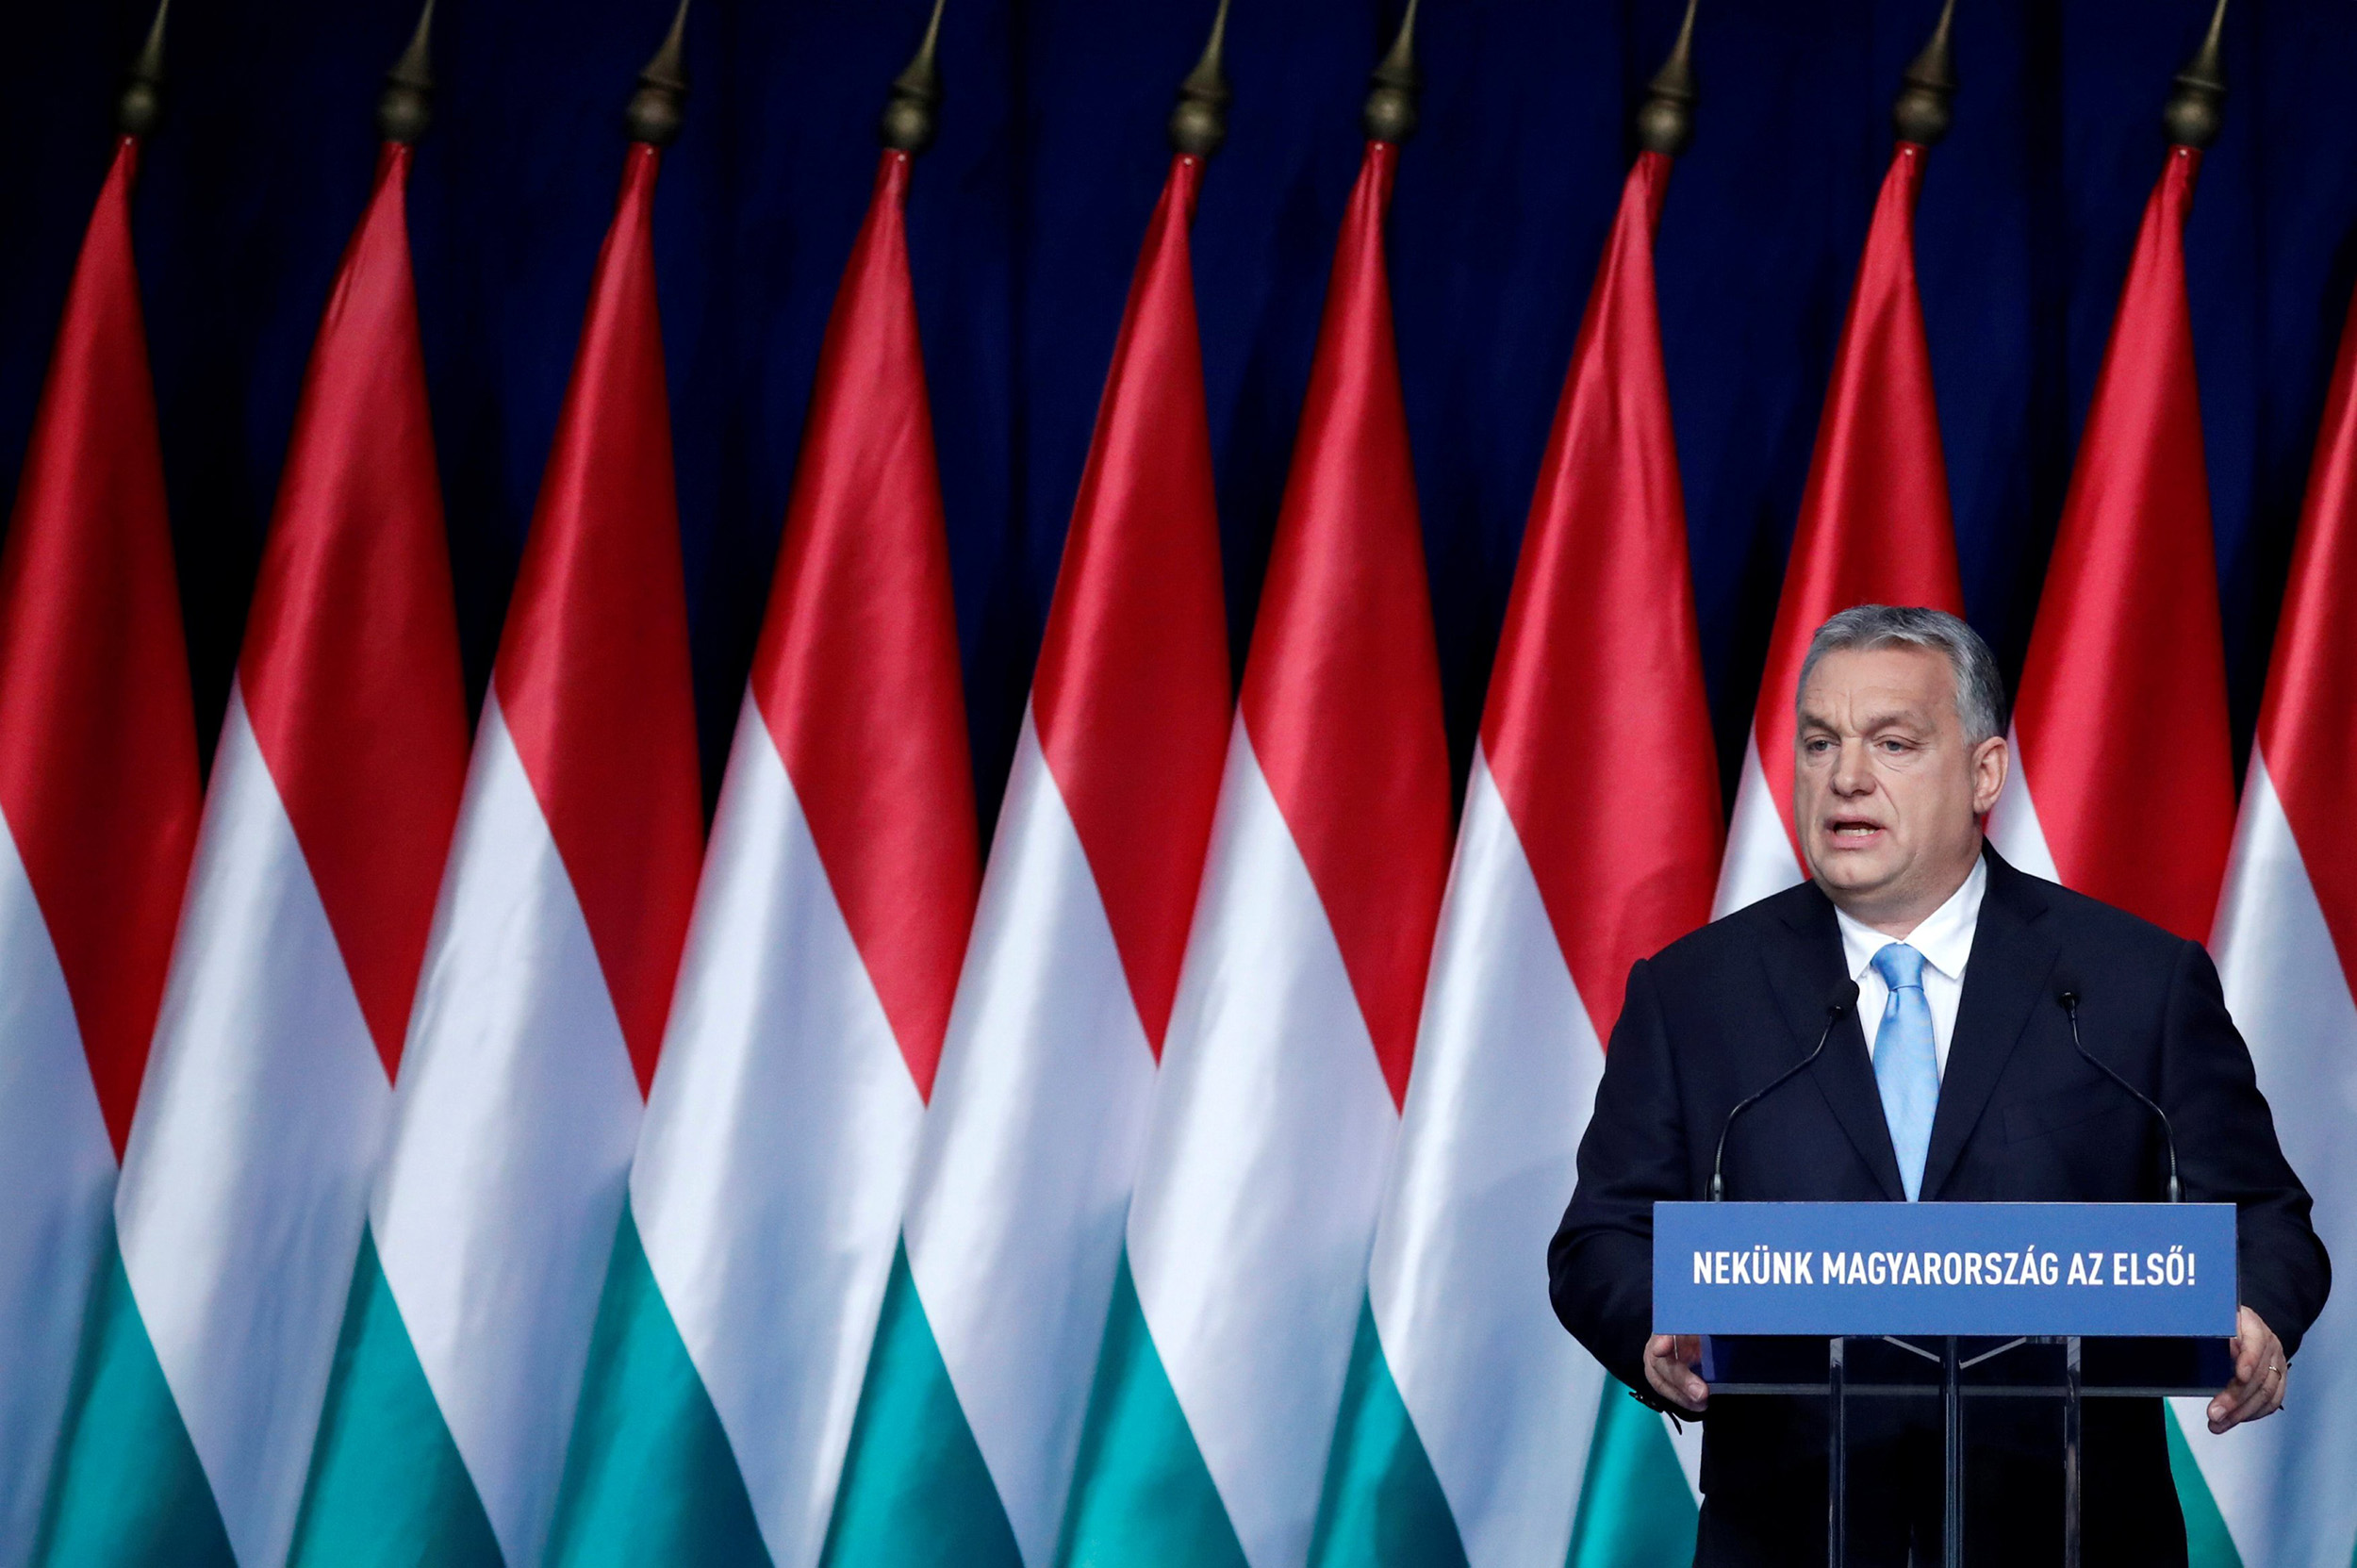 Moms-with-4-kids-will-pay-no-income-tax-as-Hungary-hopes-for-baby-boom